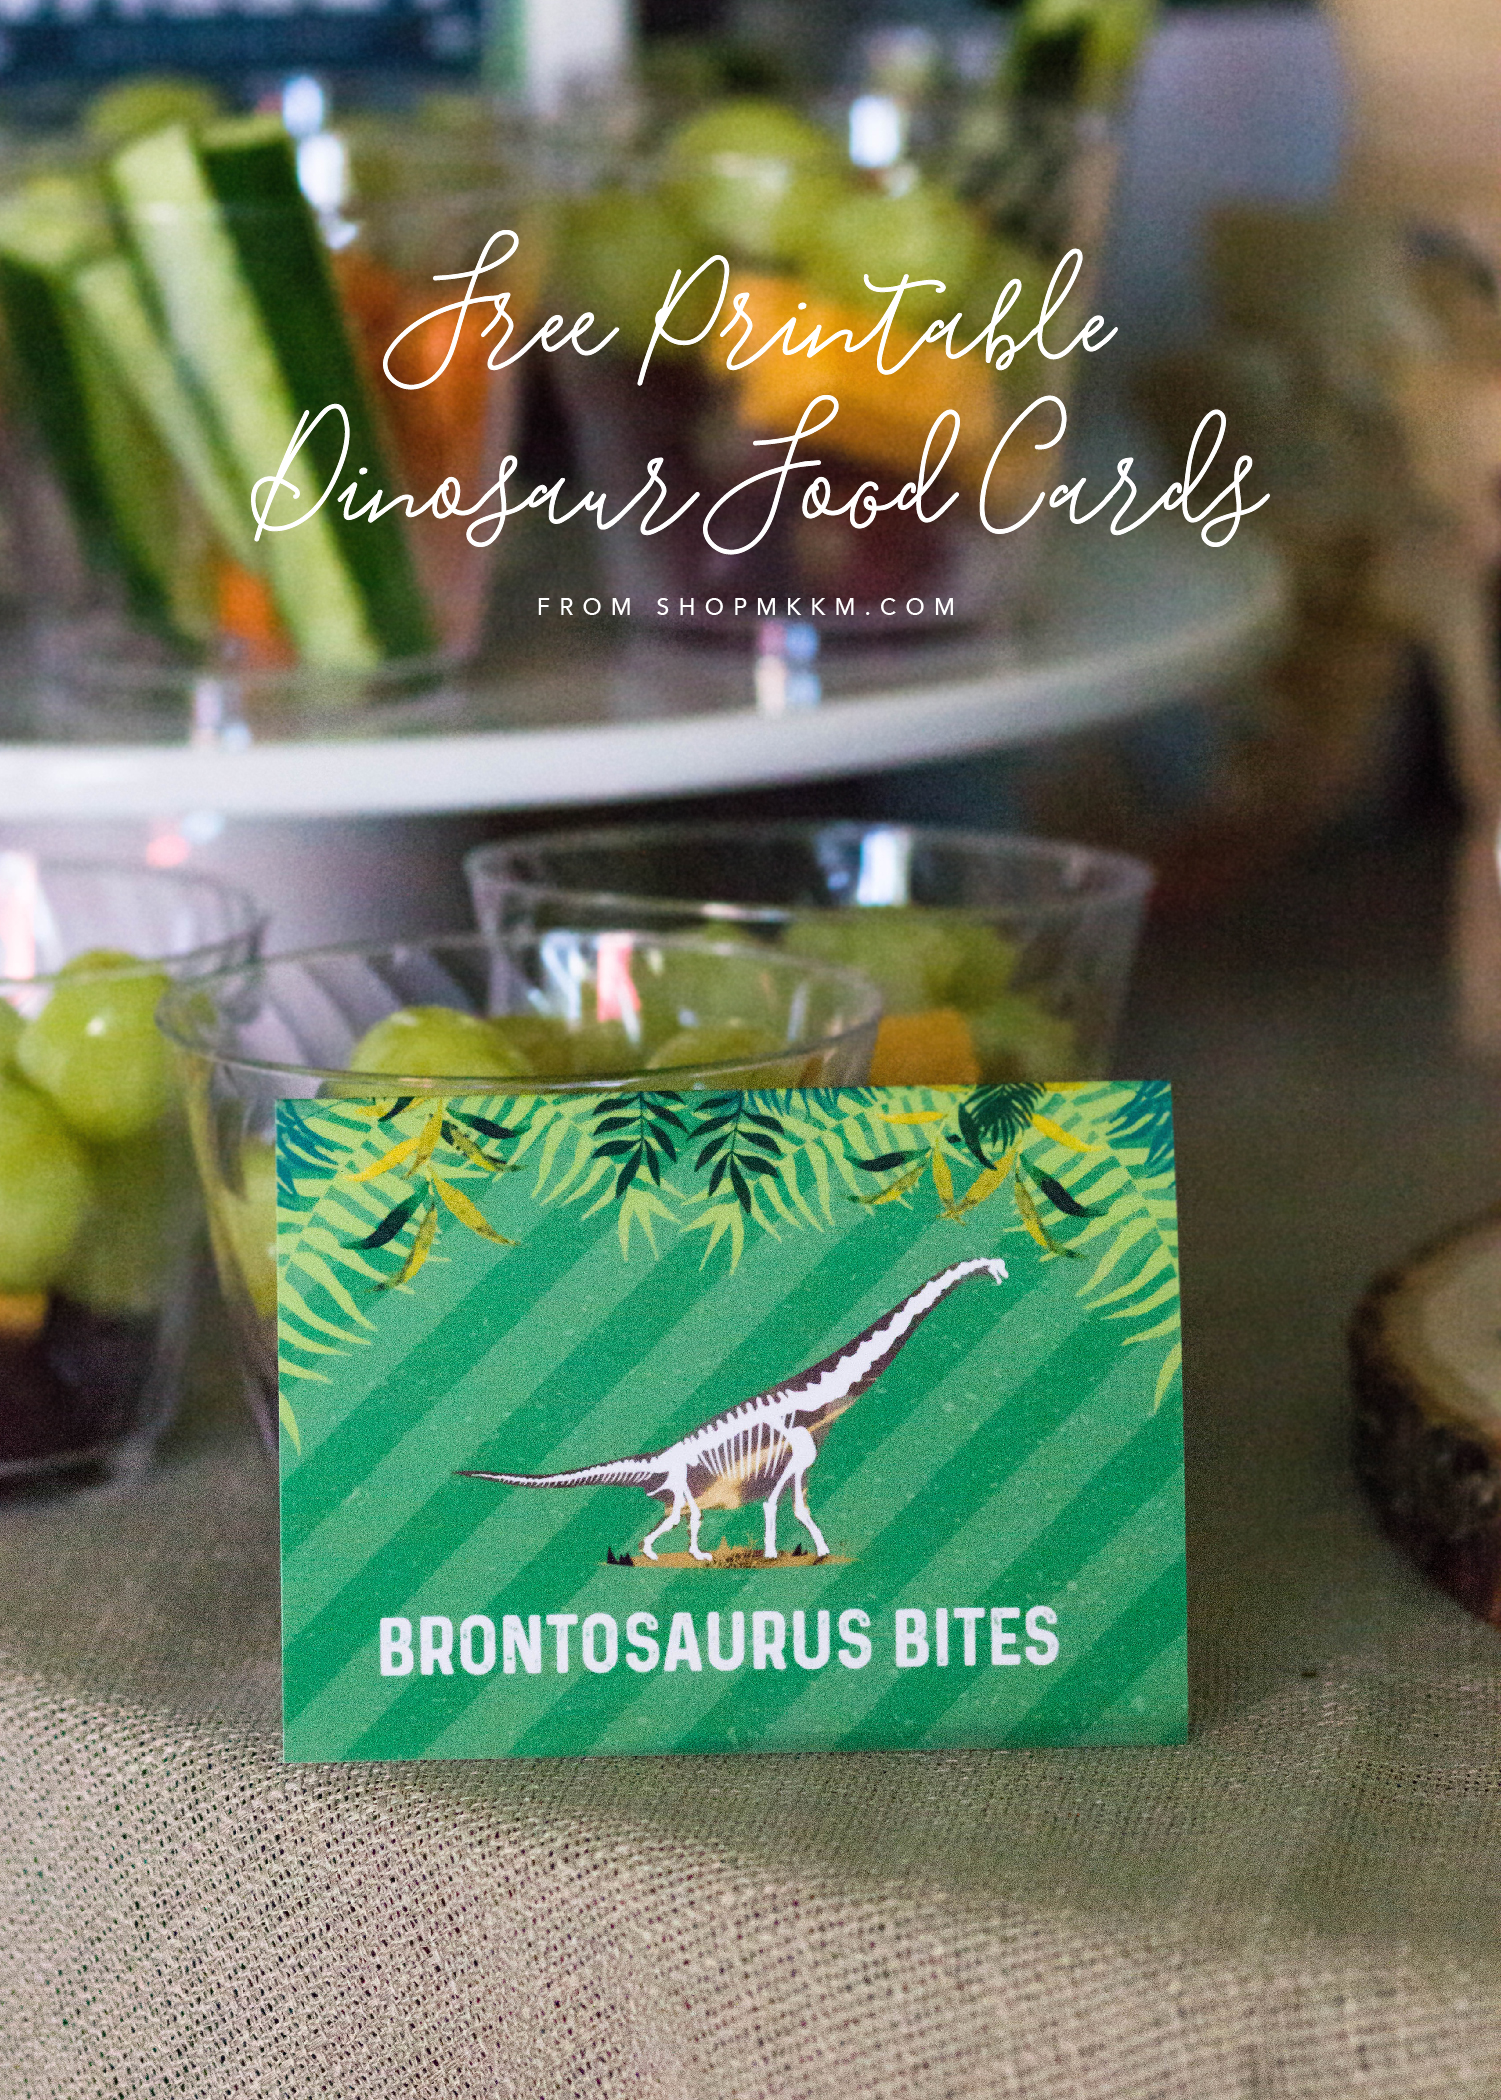 Free printable Dinosaur food cards from MKKM Designs.